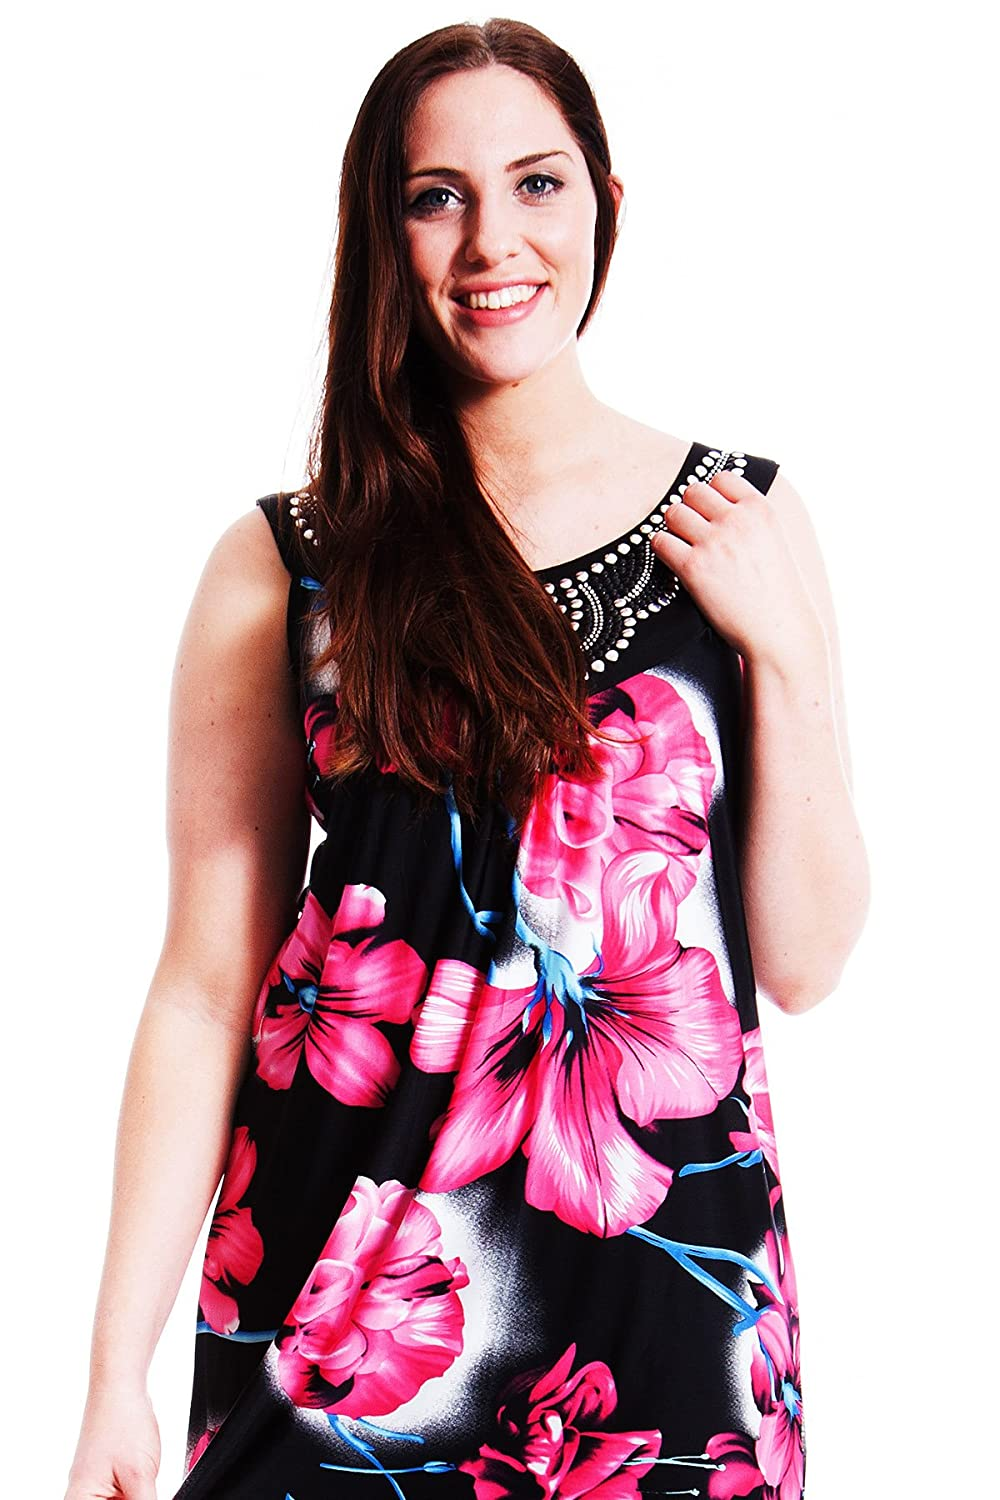 New Ladies Plus Size Top Womens Floral Print Paradise Blues Round Neck  Sleeveless Tunic Nouvelle Collection 14 to 26-28: Amazon.co.uk: Clothing